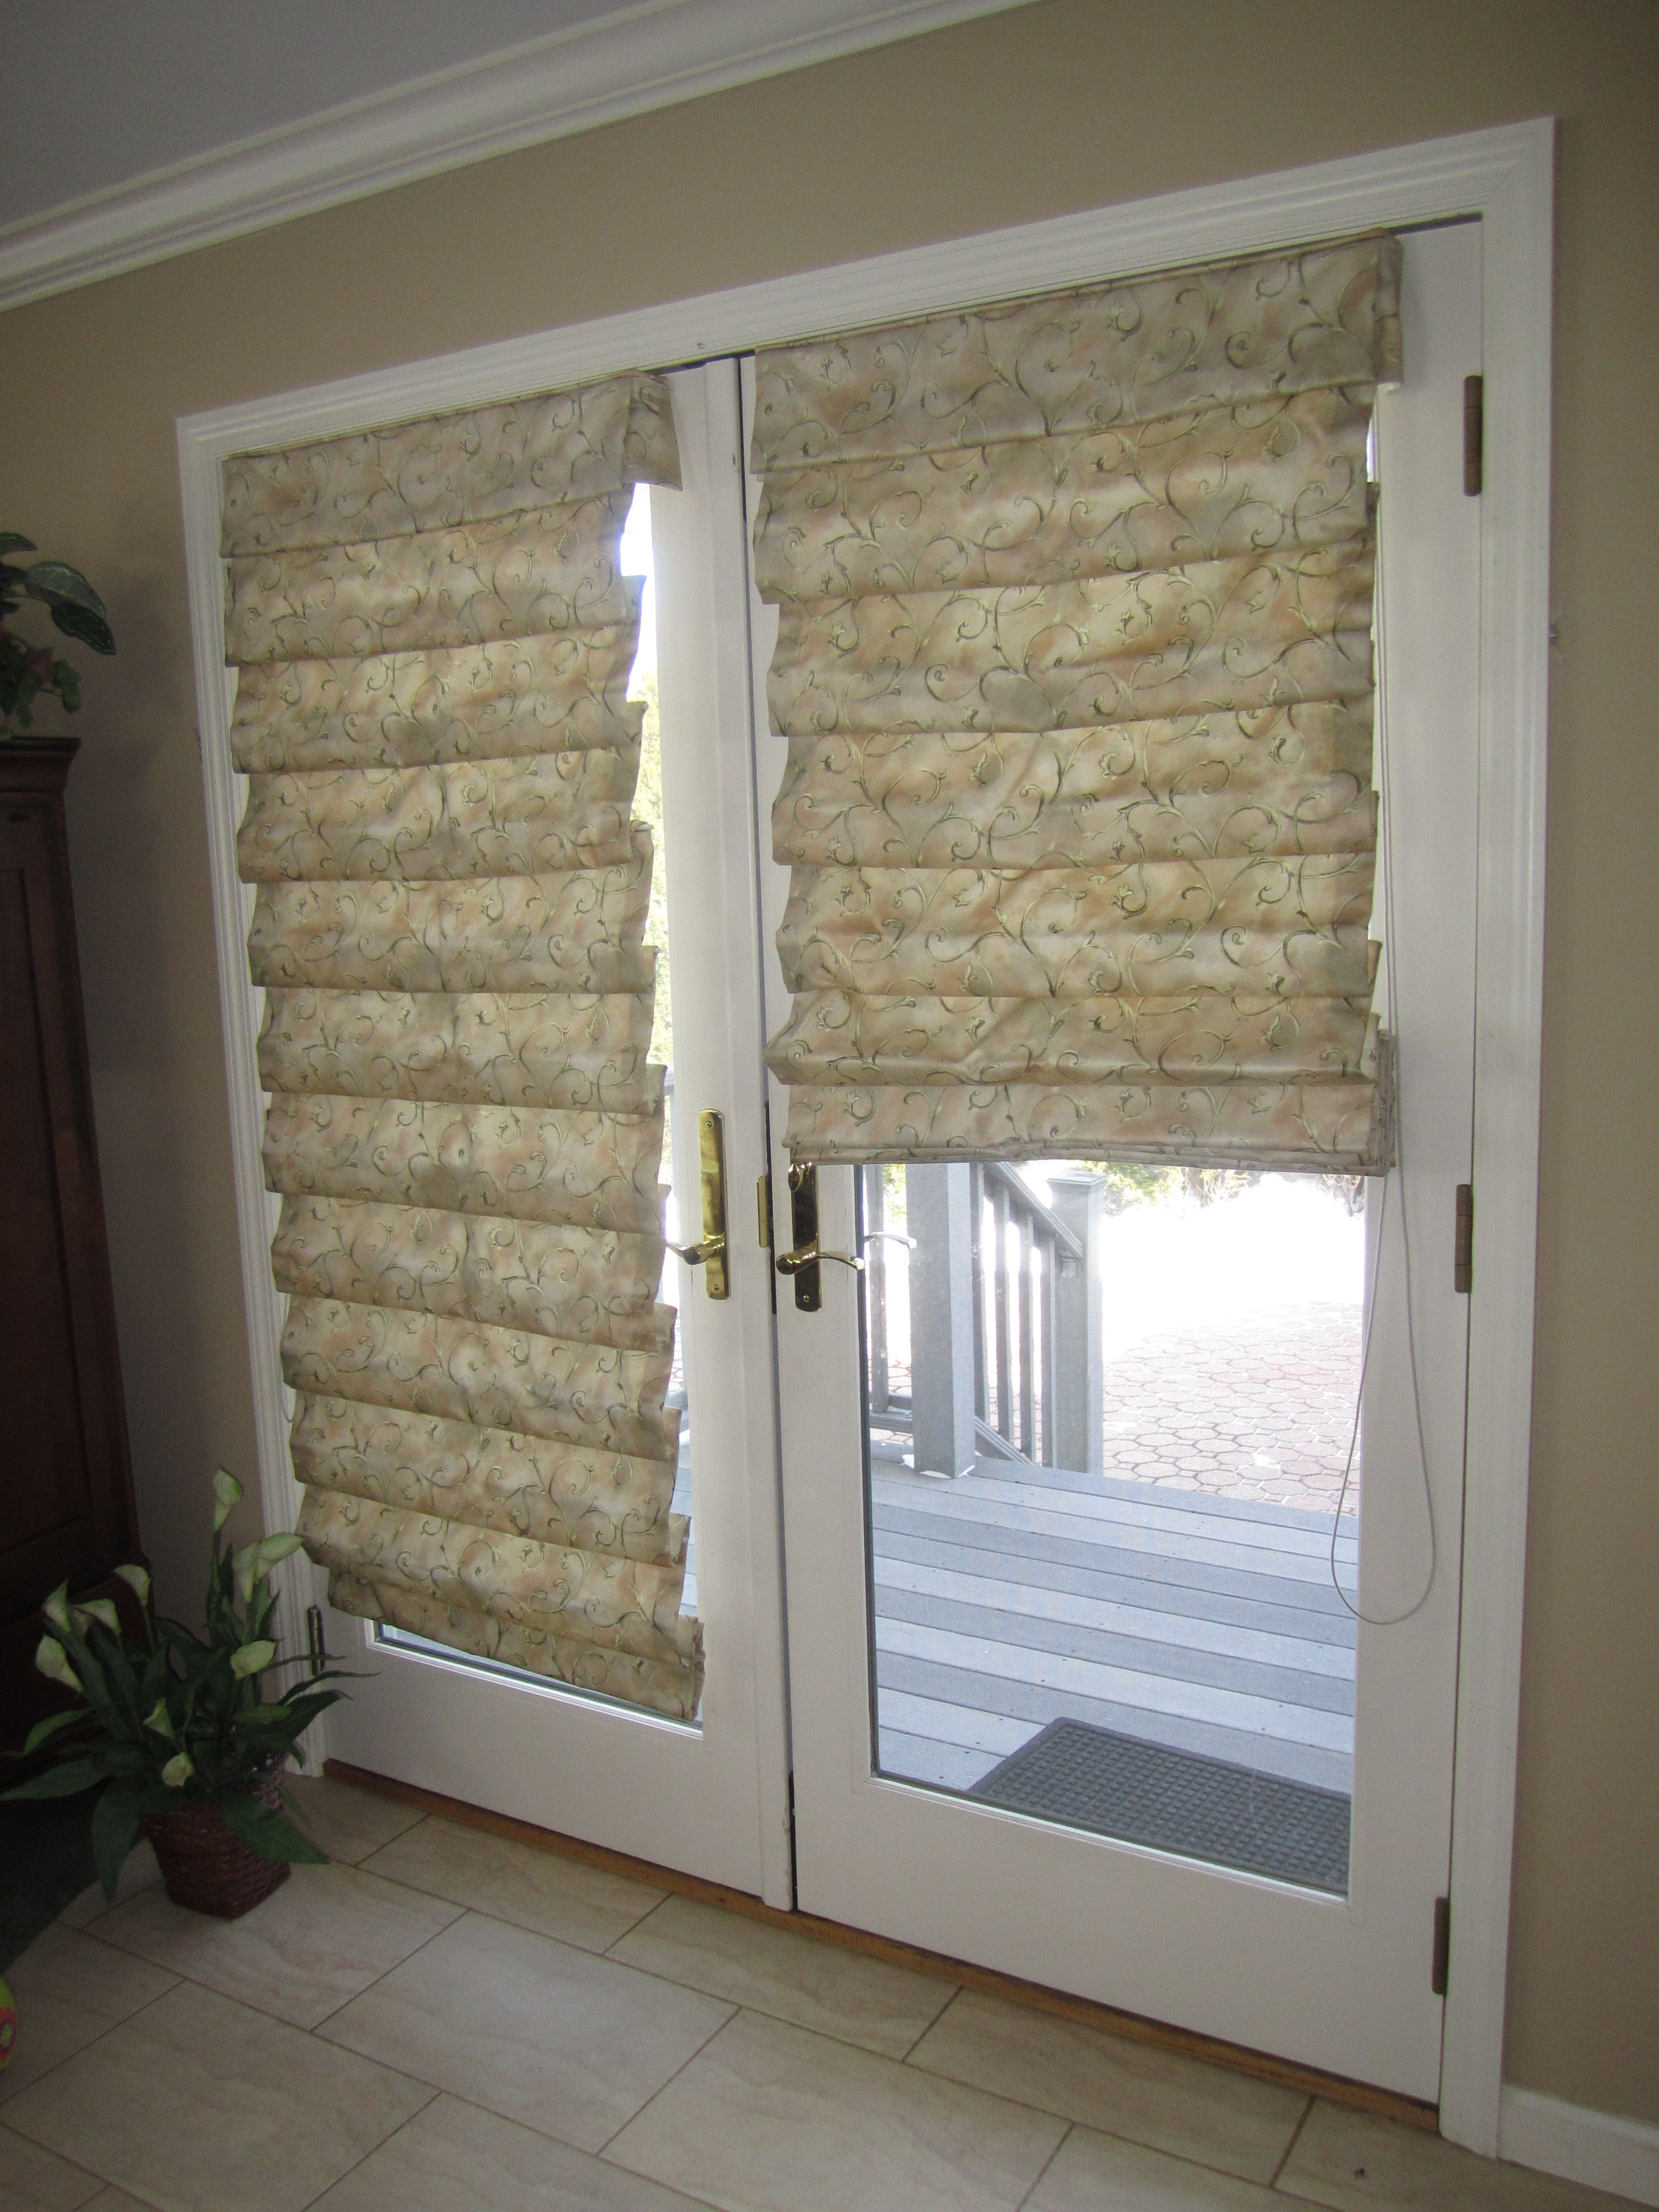 of diy treatments window for door glass home vertiglide pictures ikea doors french ideas kitchen curtains full shutters shades patio depot size sliding in plantation